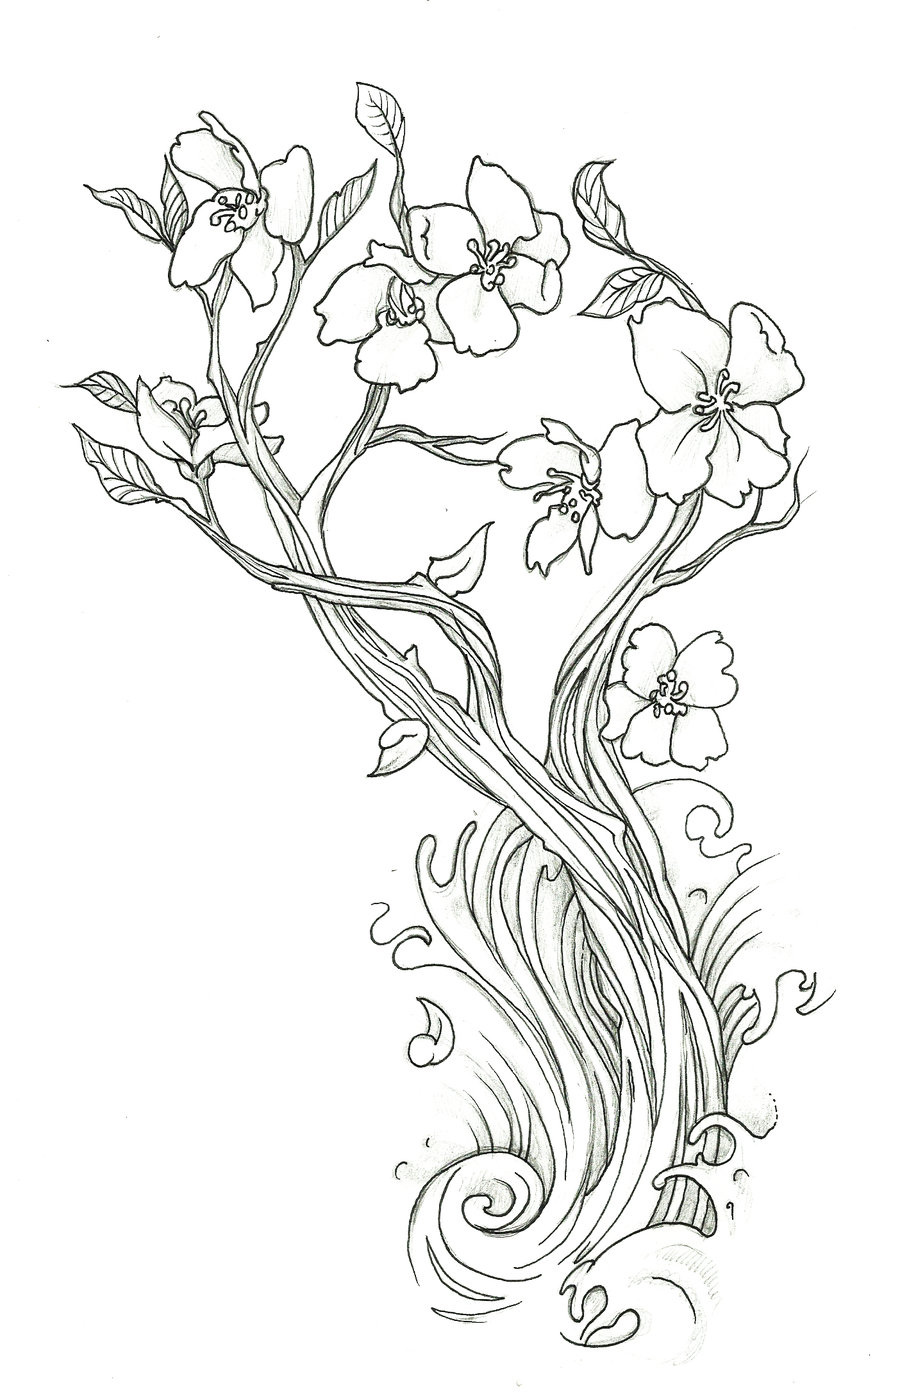 900x1394 Sophisticated Illustrations And Drawings To Color Of Scenery